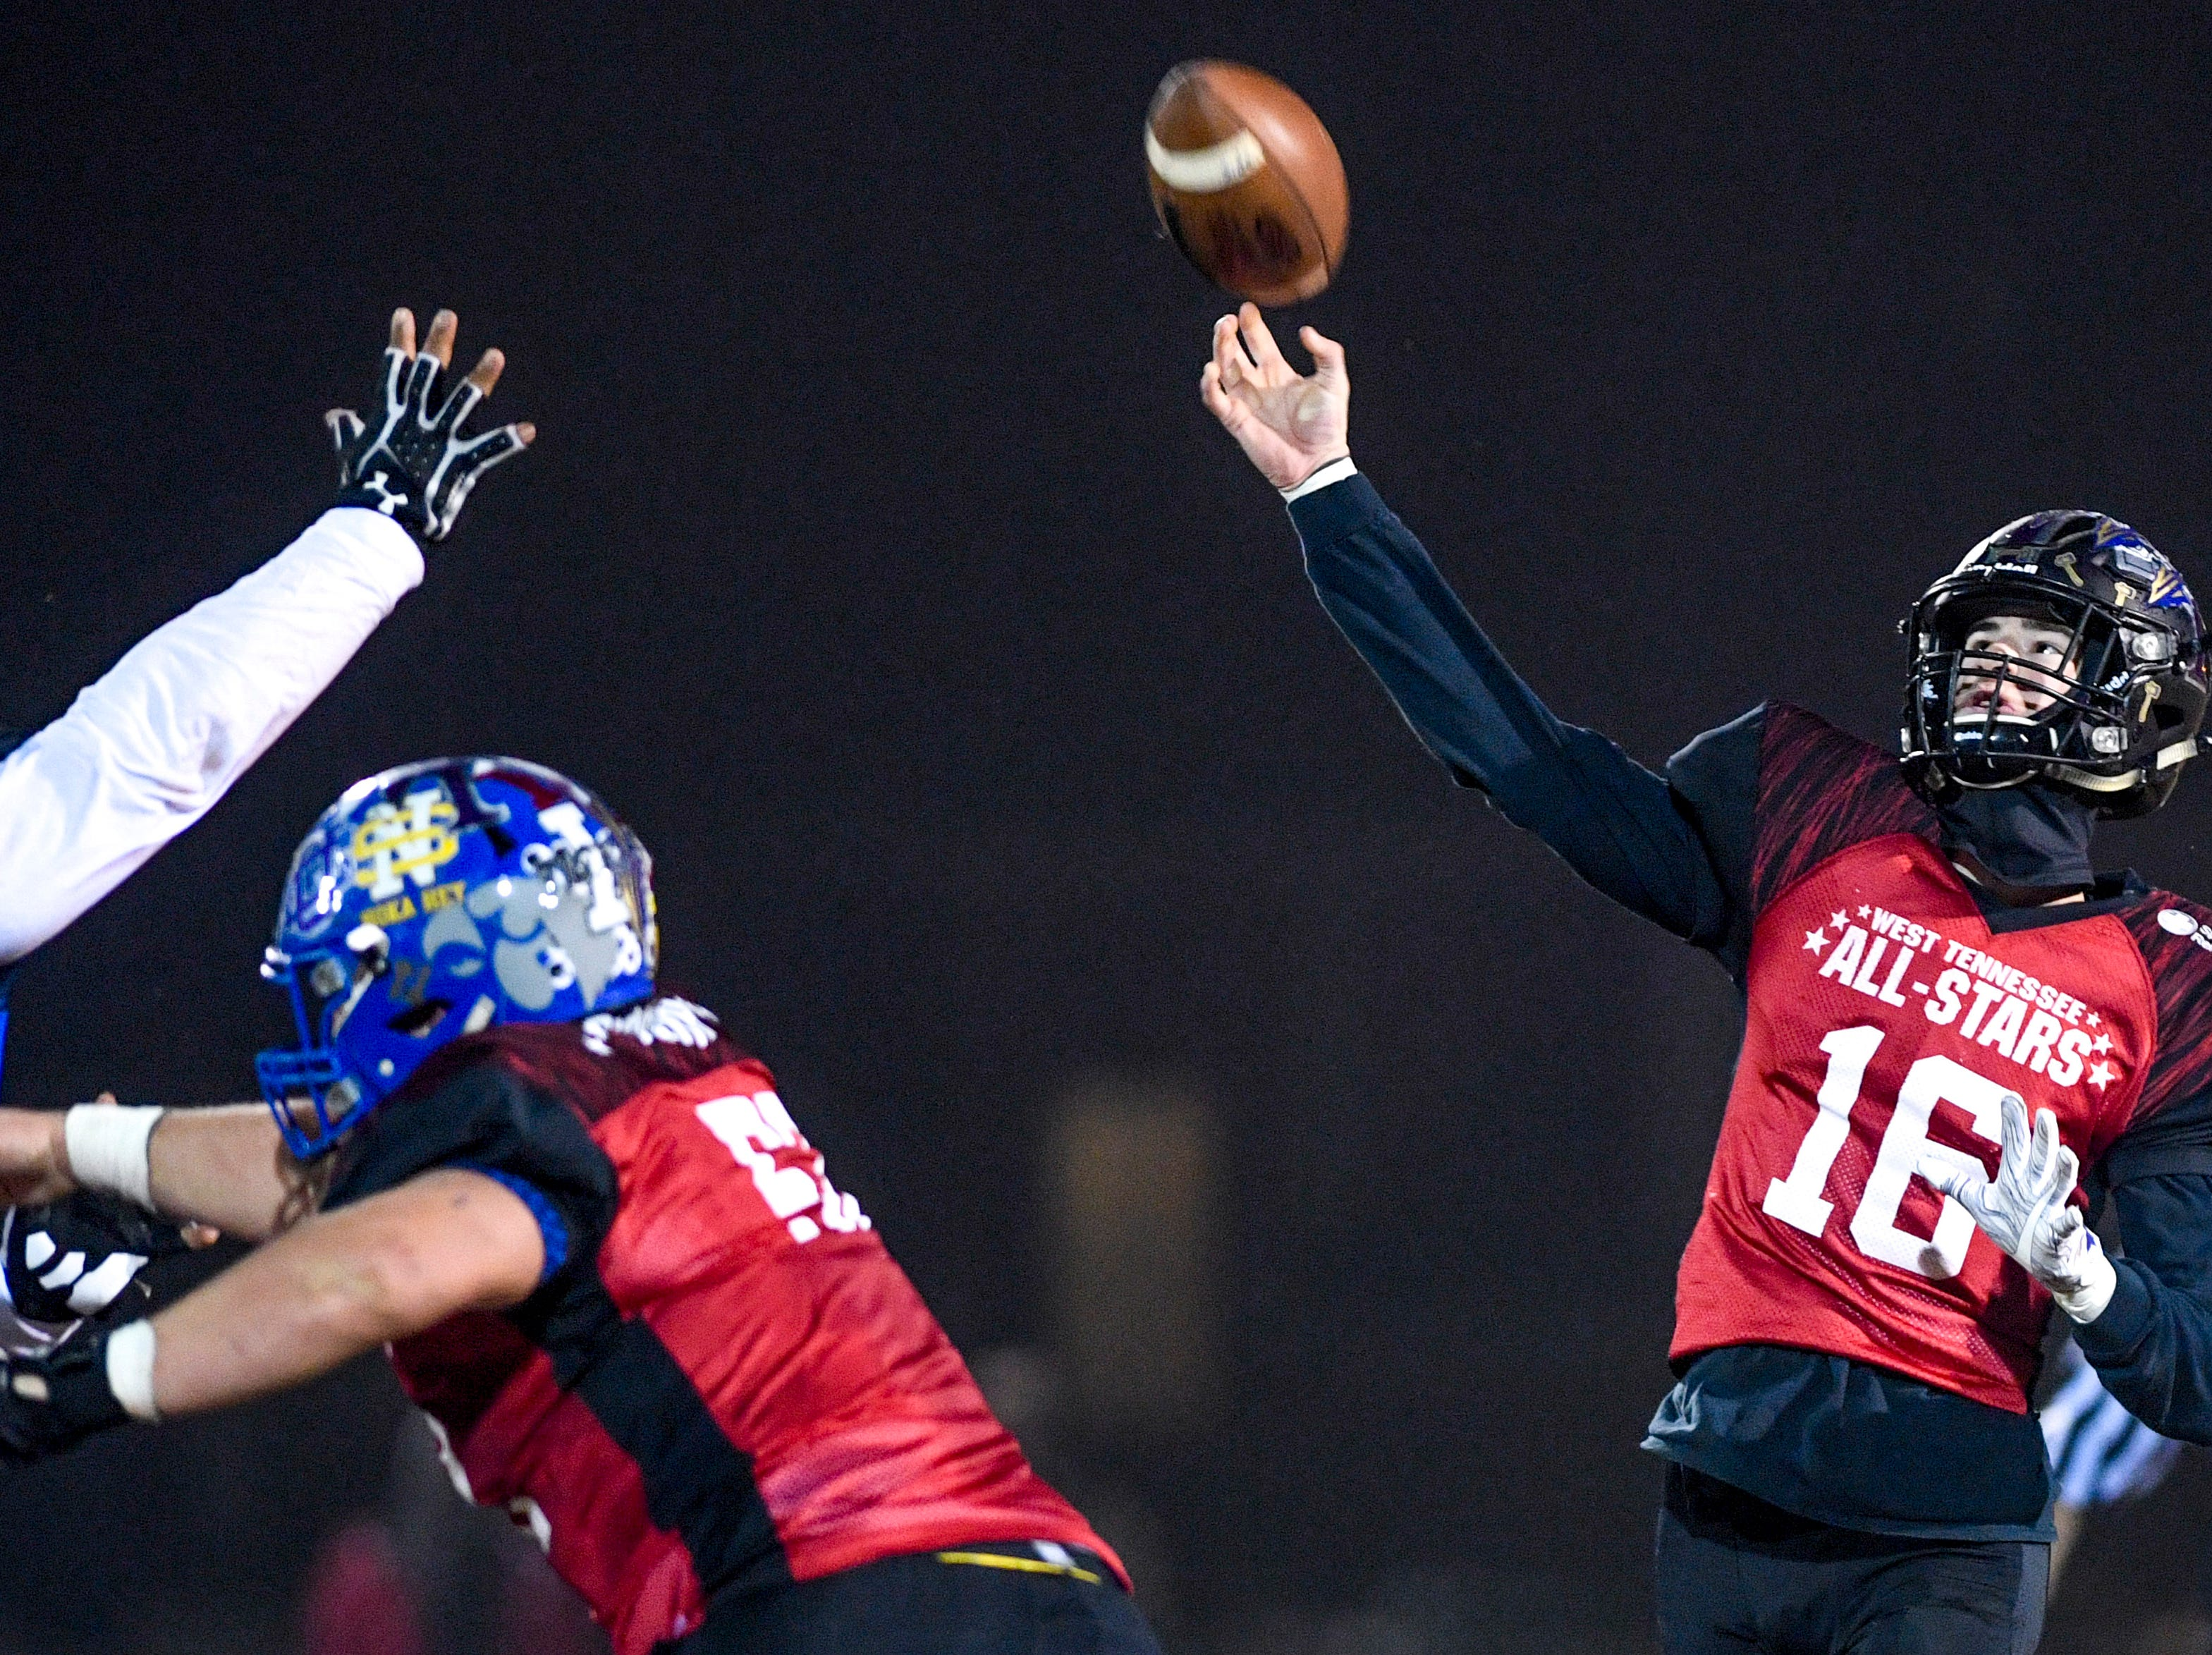 TCA's Lane Lambert (16) lets off a pass during the West Tennessee All-Star football game at University School of Jackson in Jackson, Tenn., on Friday, Dec. 7, 2018.